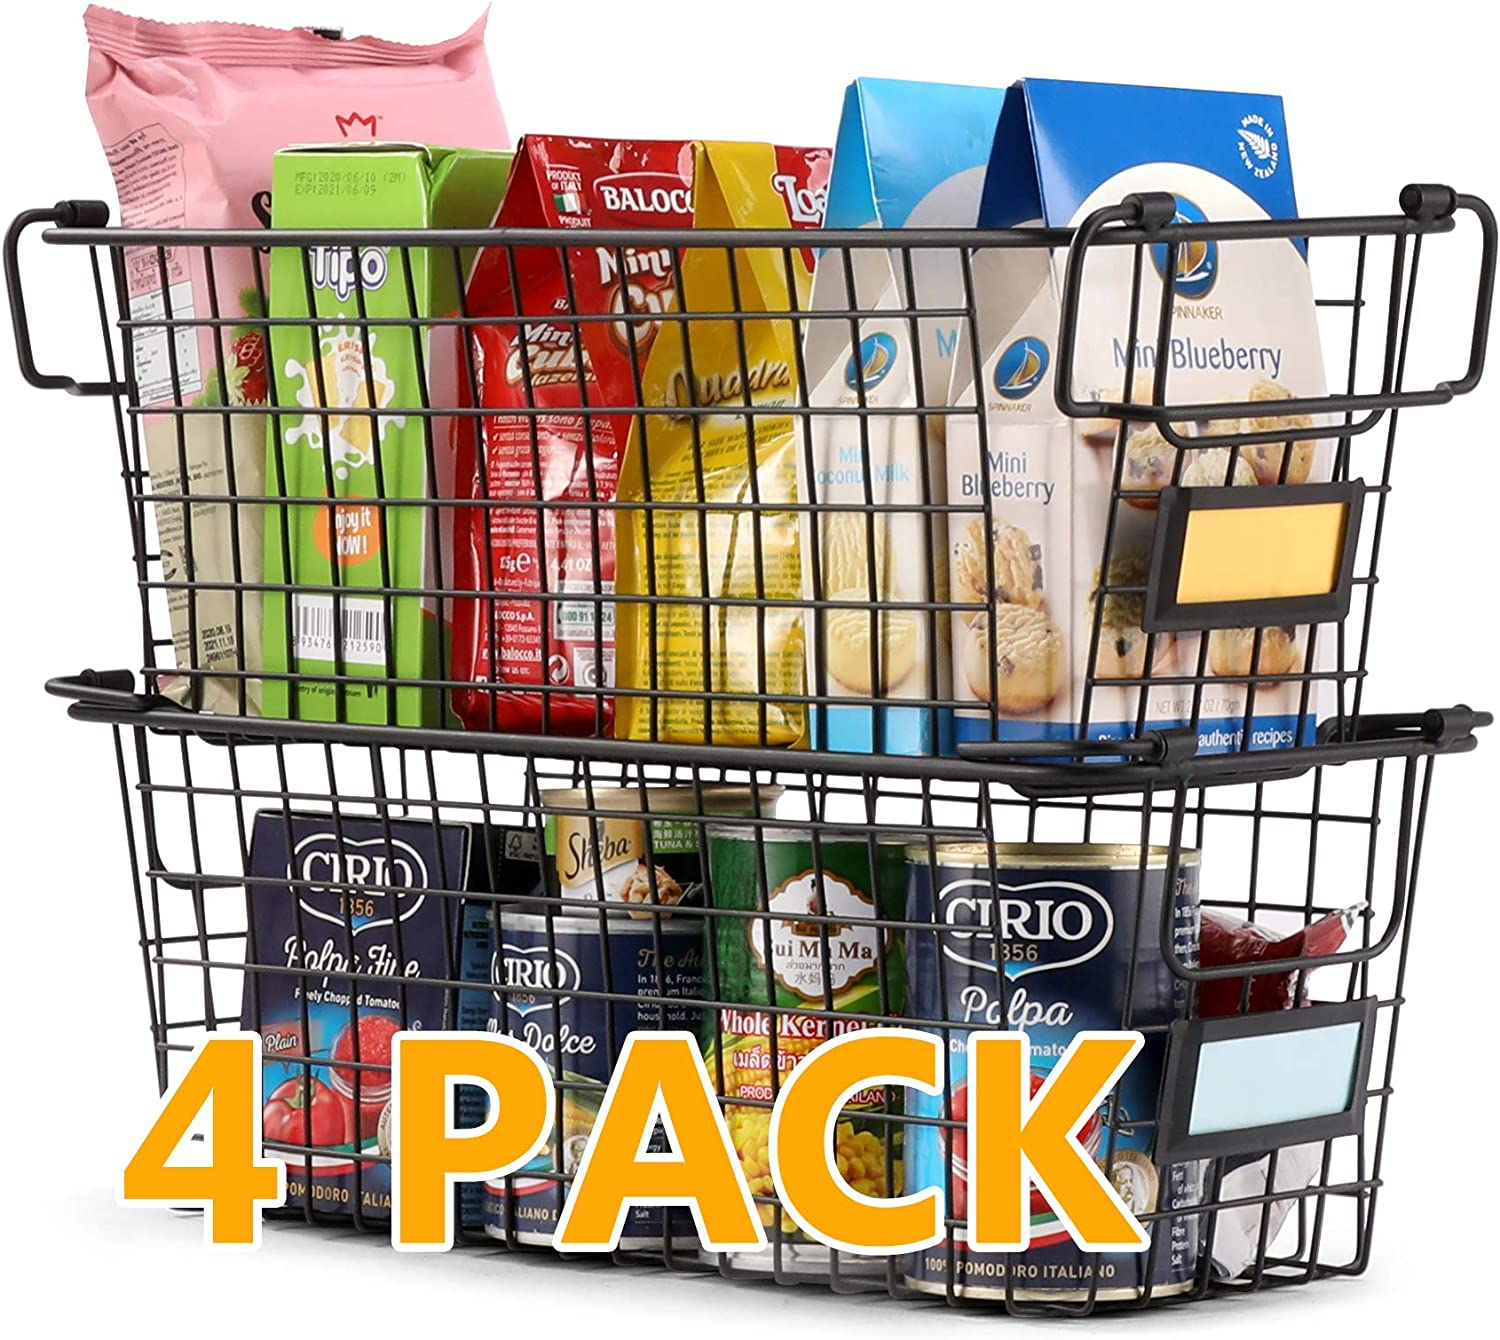 4 Pack Large Stackable Wire Baskets For Pantry Storage and Organization - Metal Storage Bins for Food, Fruit - Kitchen Bathroom Closet Cabinets Countertops Organizer